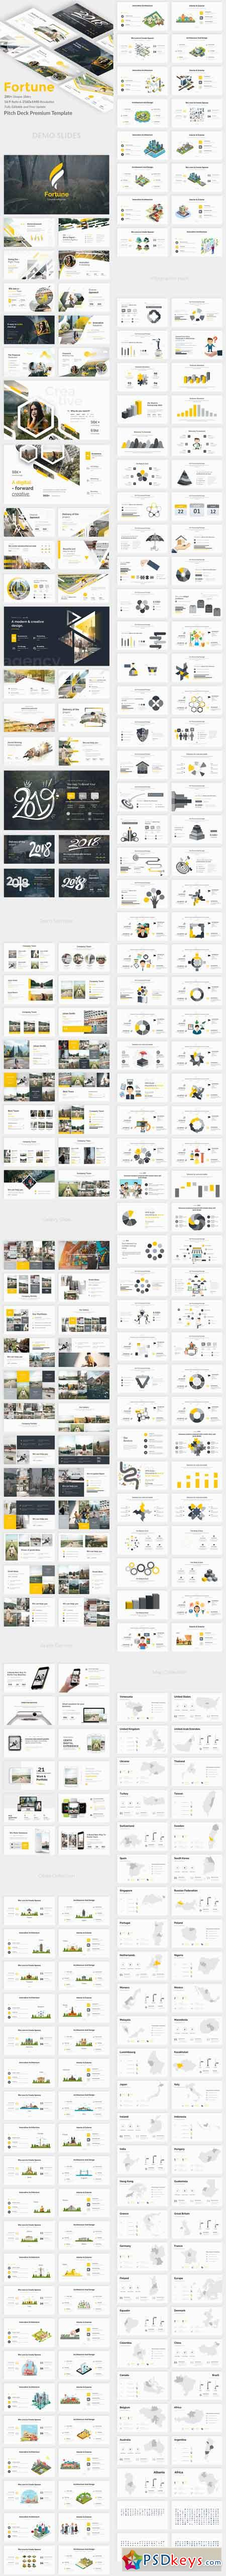 Fortune Premium Pitch Deck Powerpoint Template 22600204